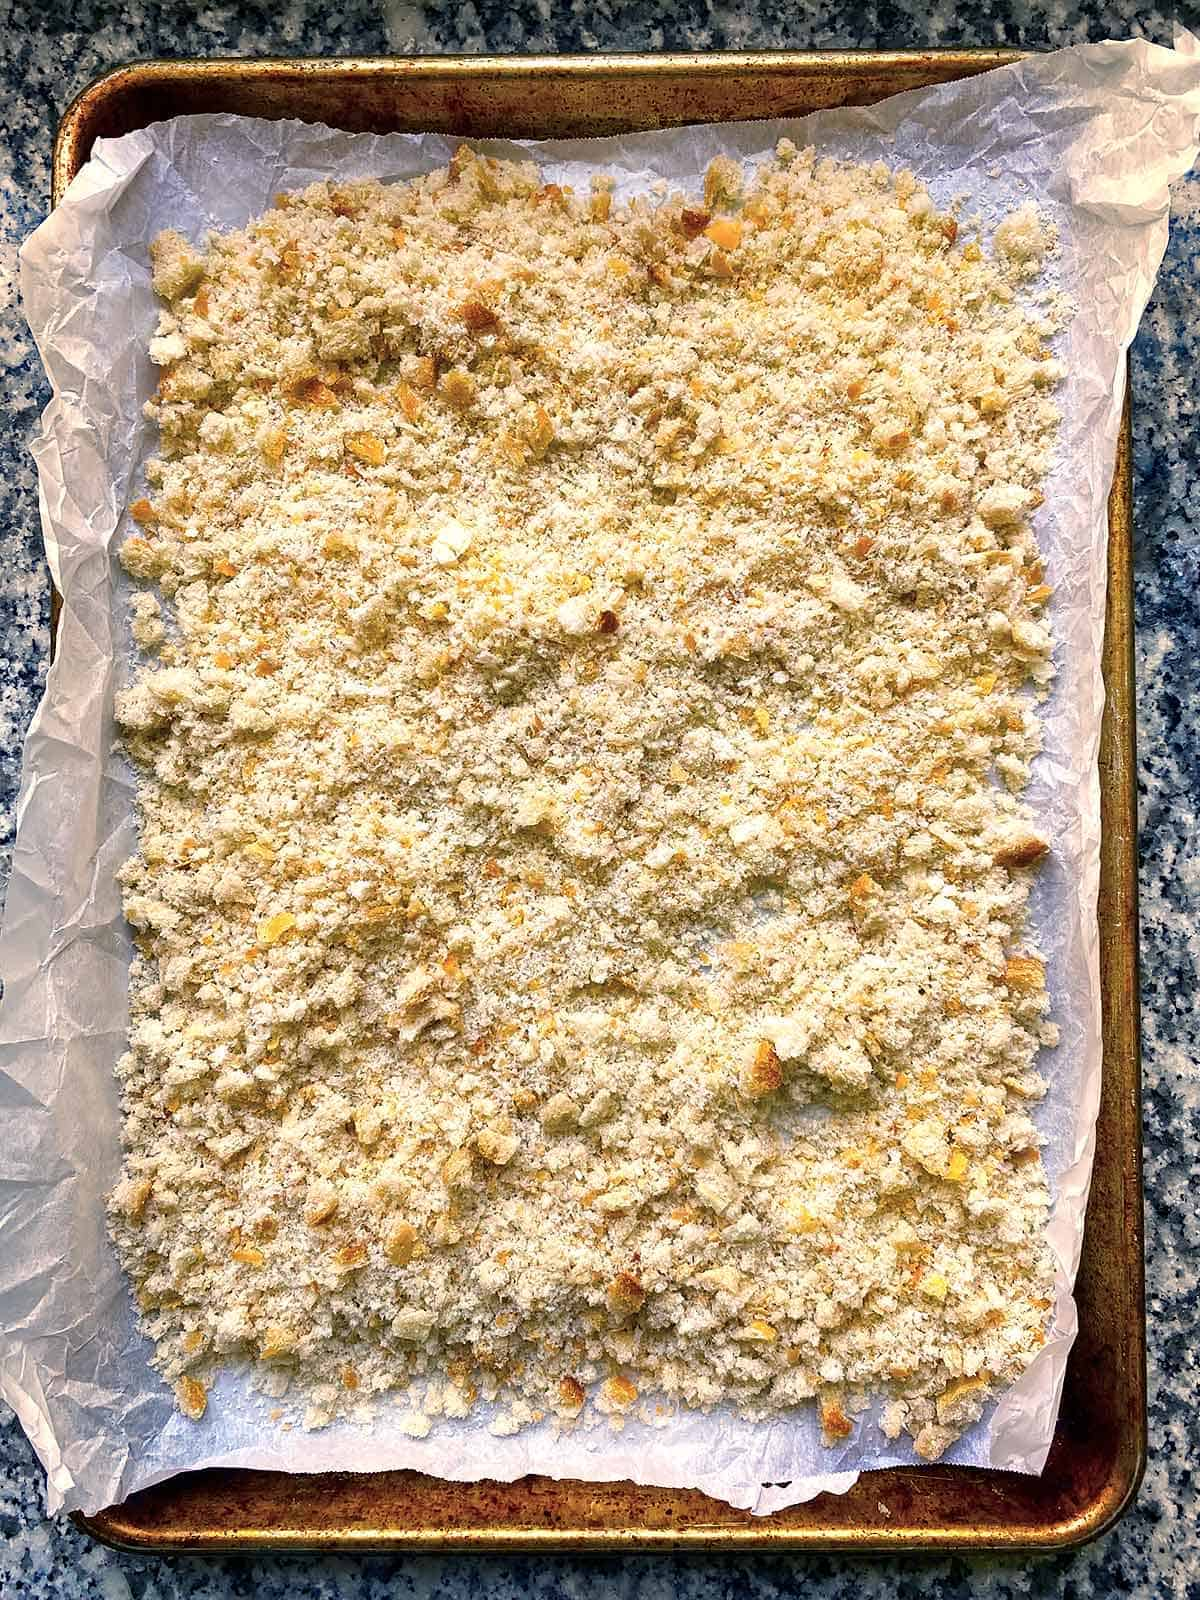 A baking sheet with bread crumbs spread on it to dry them out.